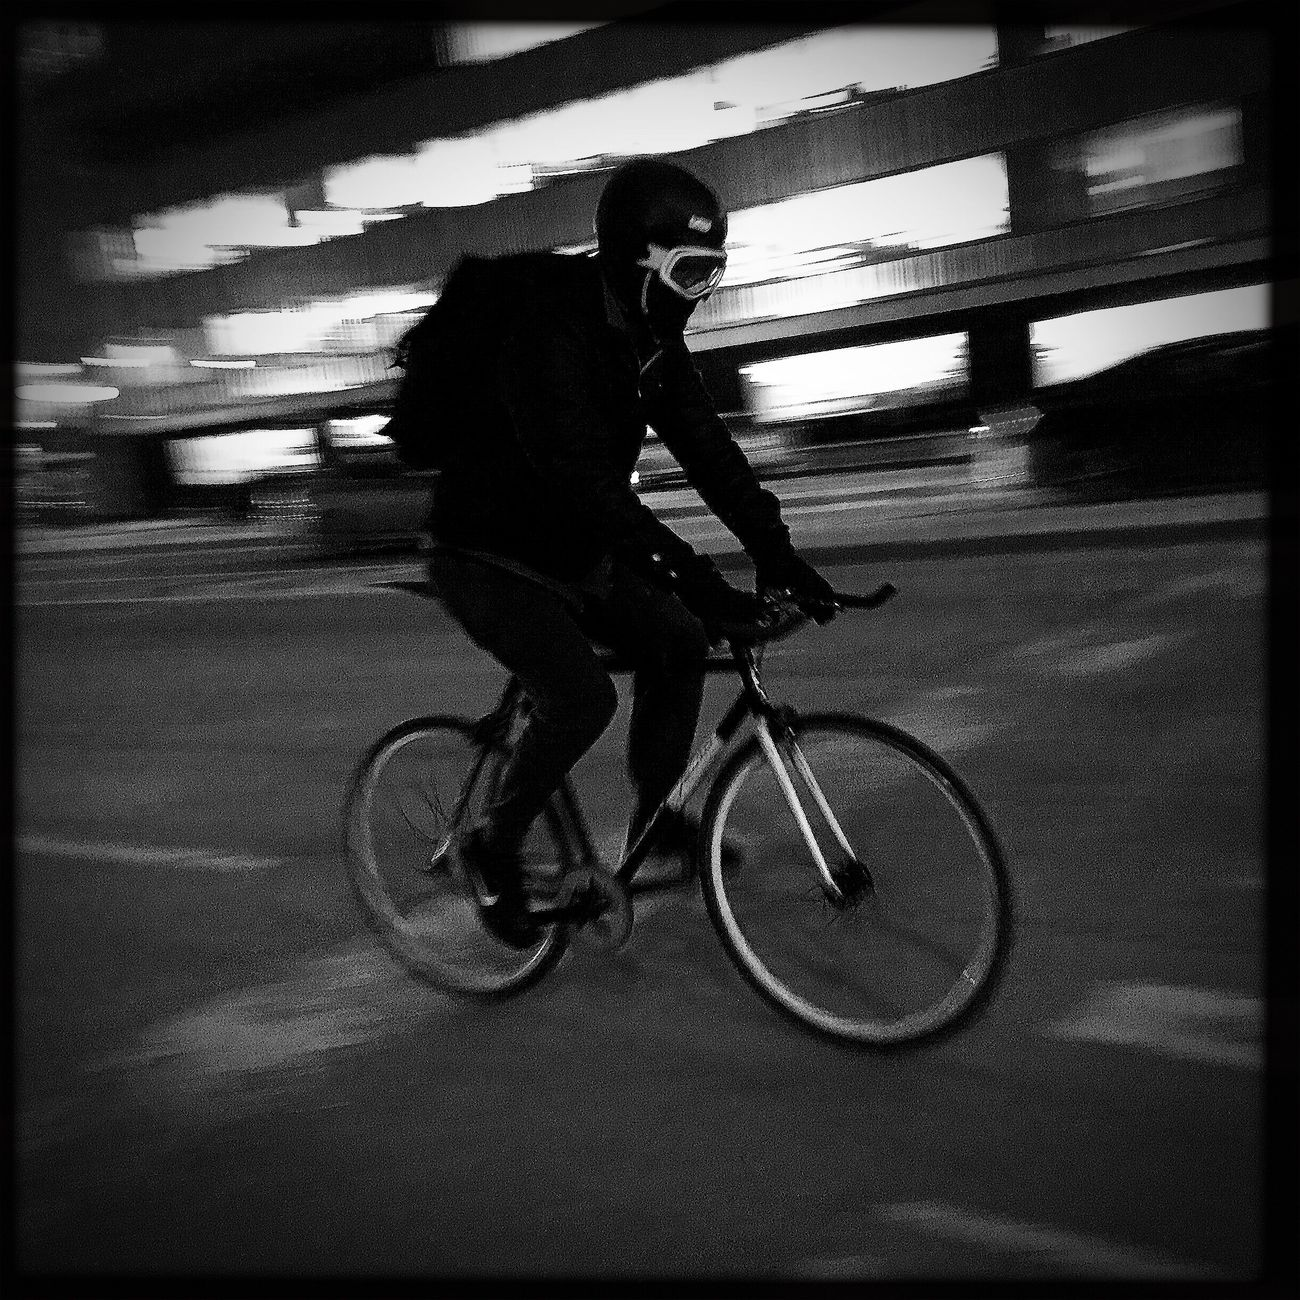 Speedy delivery. Bicycle Cycling On The Move Transportation Full Length One Person Mode Of Transport One Man Only Land Vehicle Only Men Riding Helmet Speed Real People Headwear Lifestyles Motion Cycling Helmet Men City Photojournalism Streetphotography Reportage Shootermag